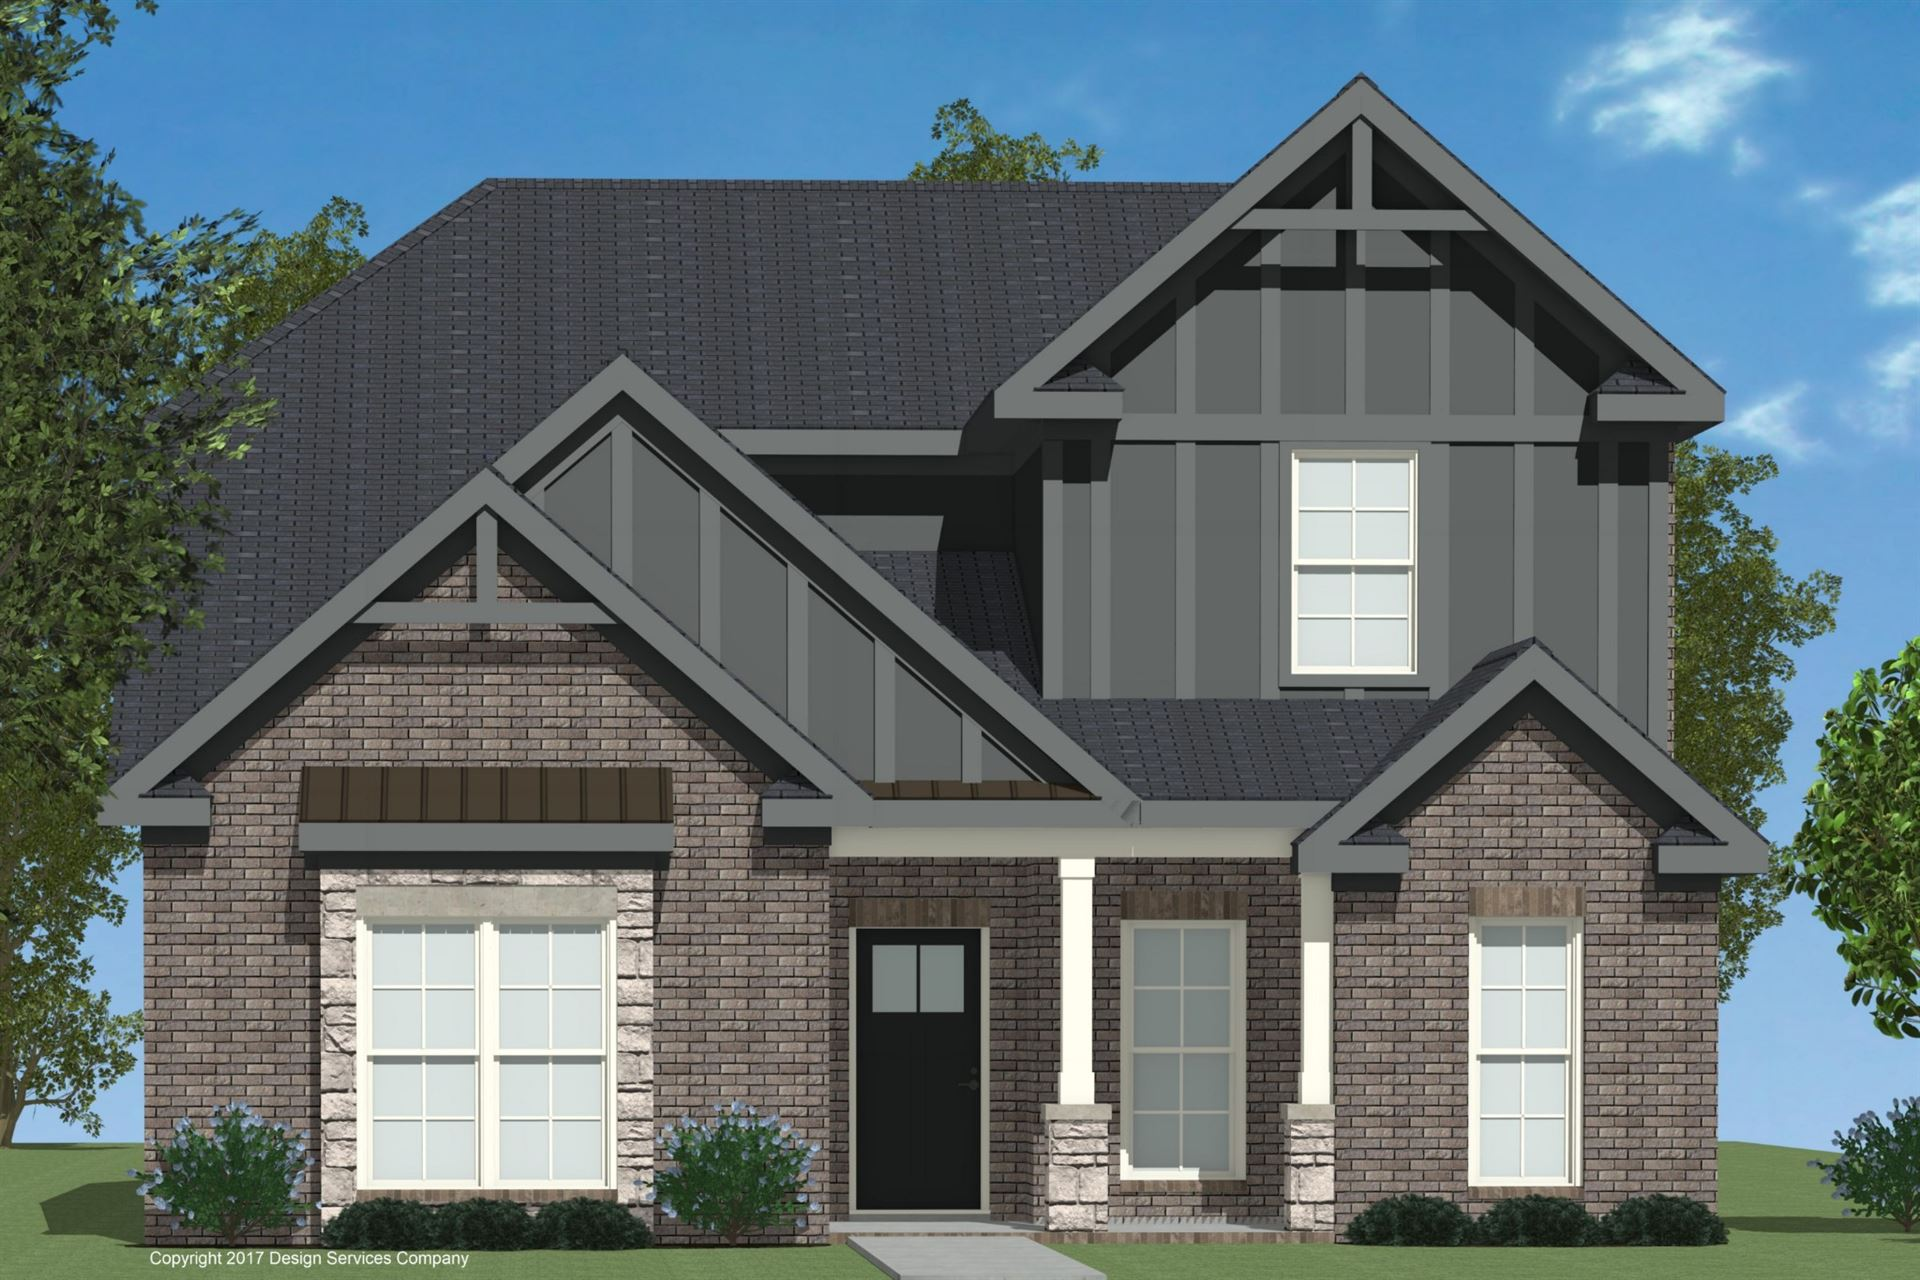 Photo of 6409 Armstrong Dr, Hermitage, TN 37076 (MLS # 2229797)